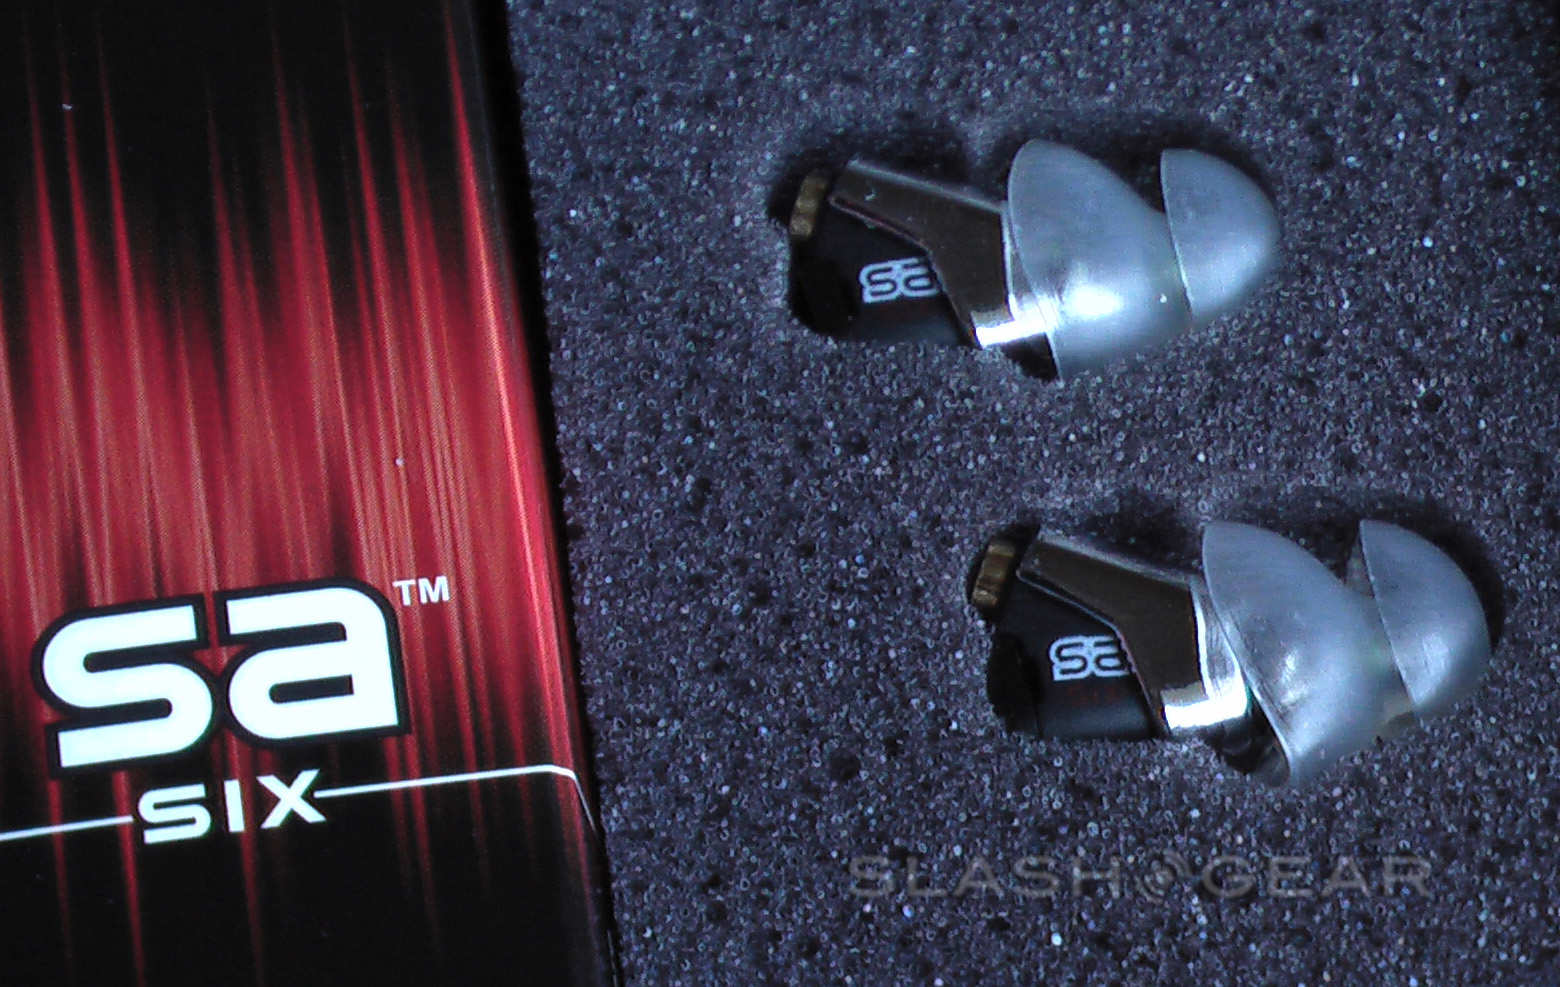 Sleek Audio SA6 In-Ear Monitor Earphones SlashGear Review